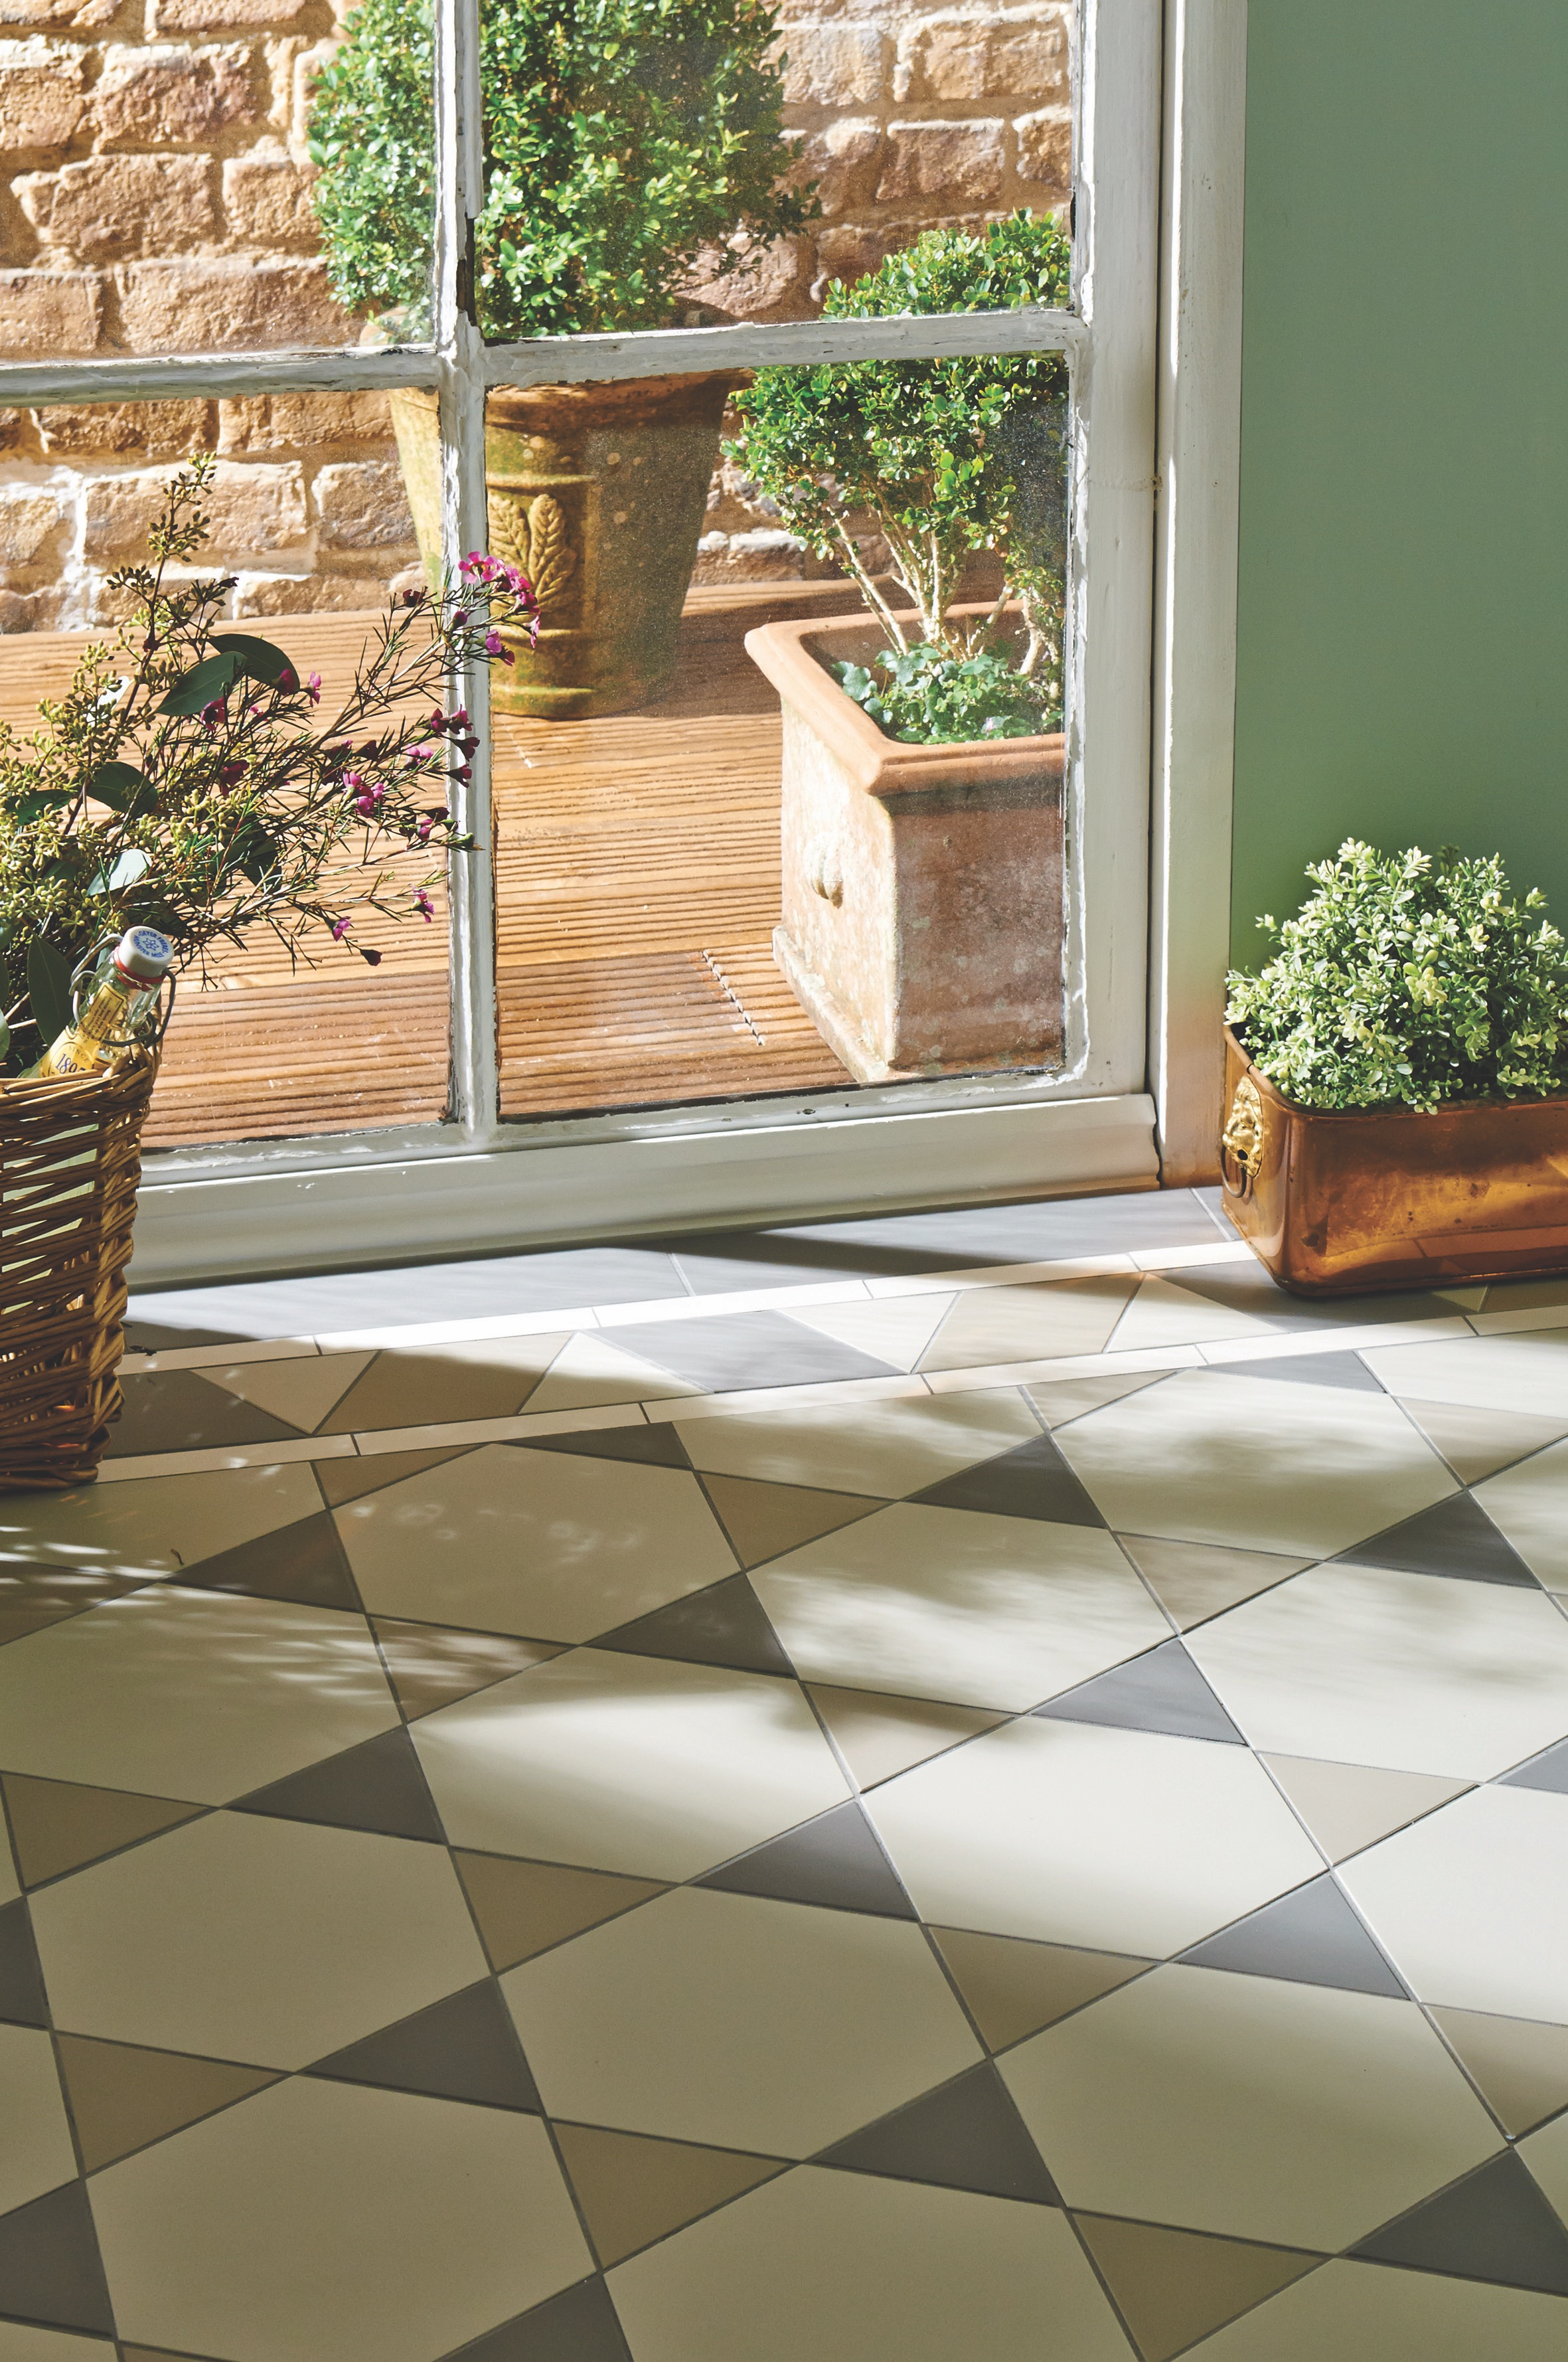 Original Style  - VFT - Hexham pattern with Rossetti border in Chester Mews, Holkham Dune and Revival Grey 2.jpg